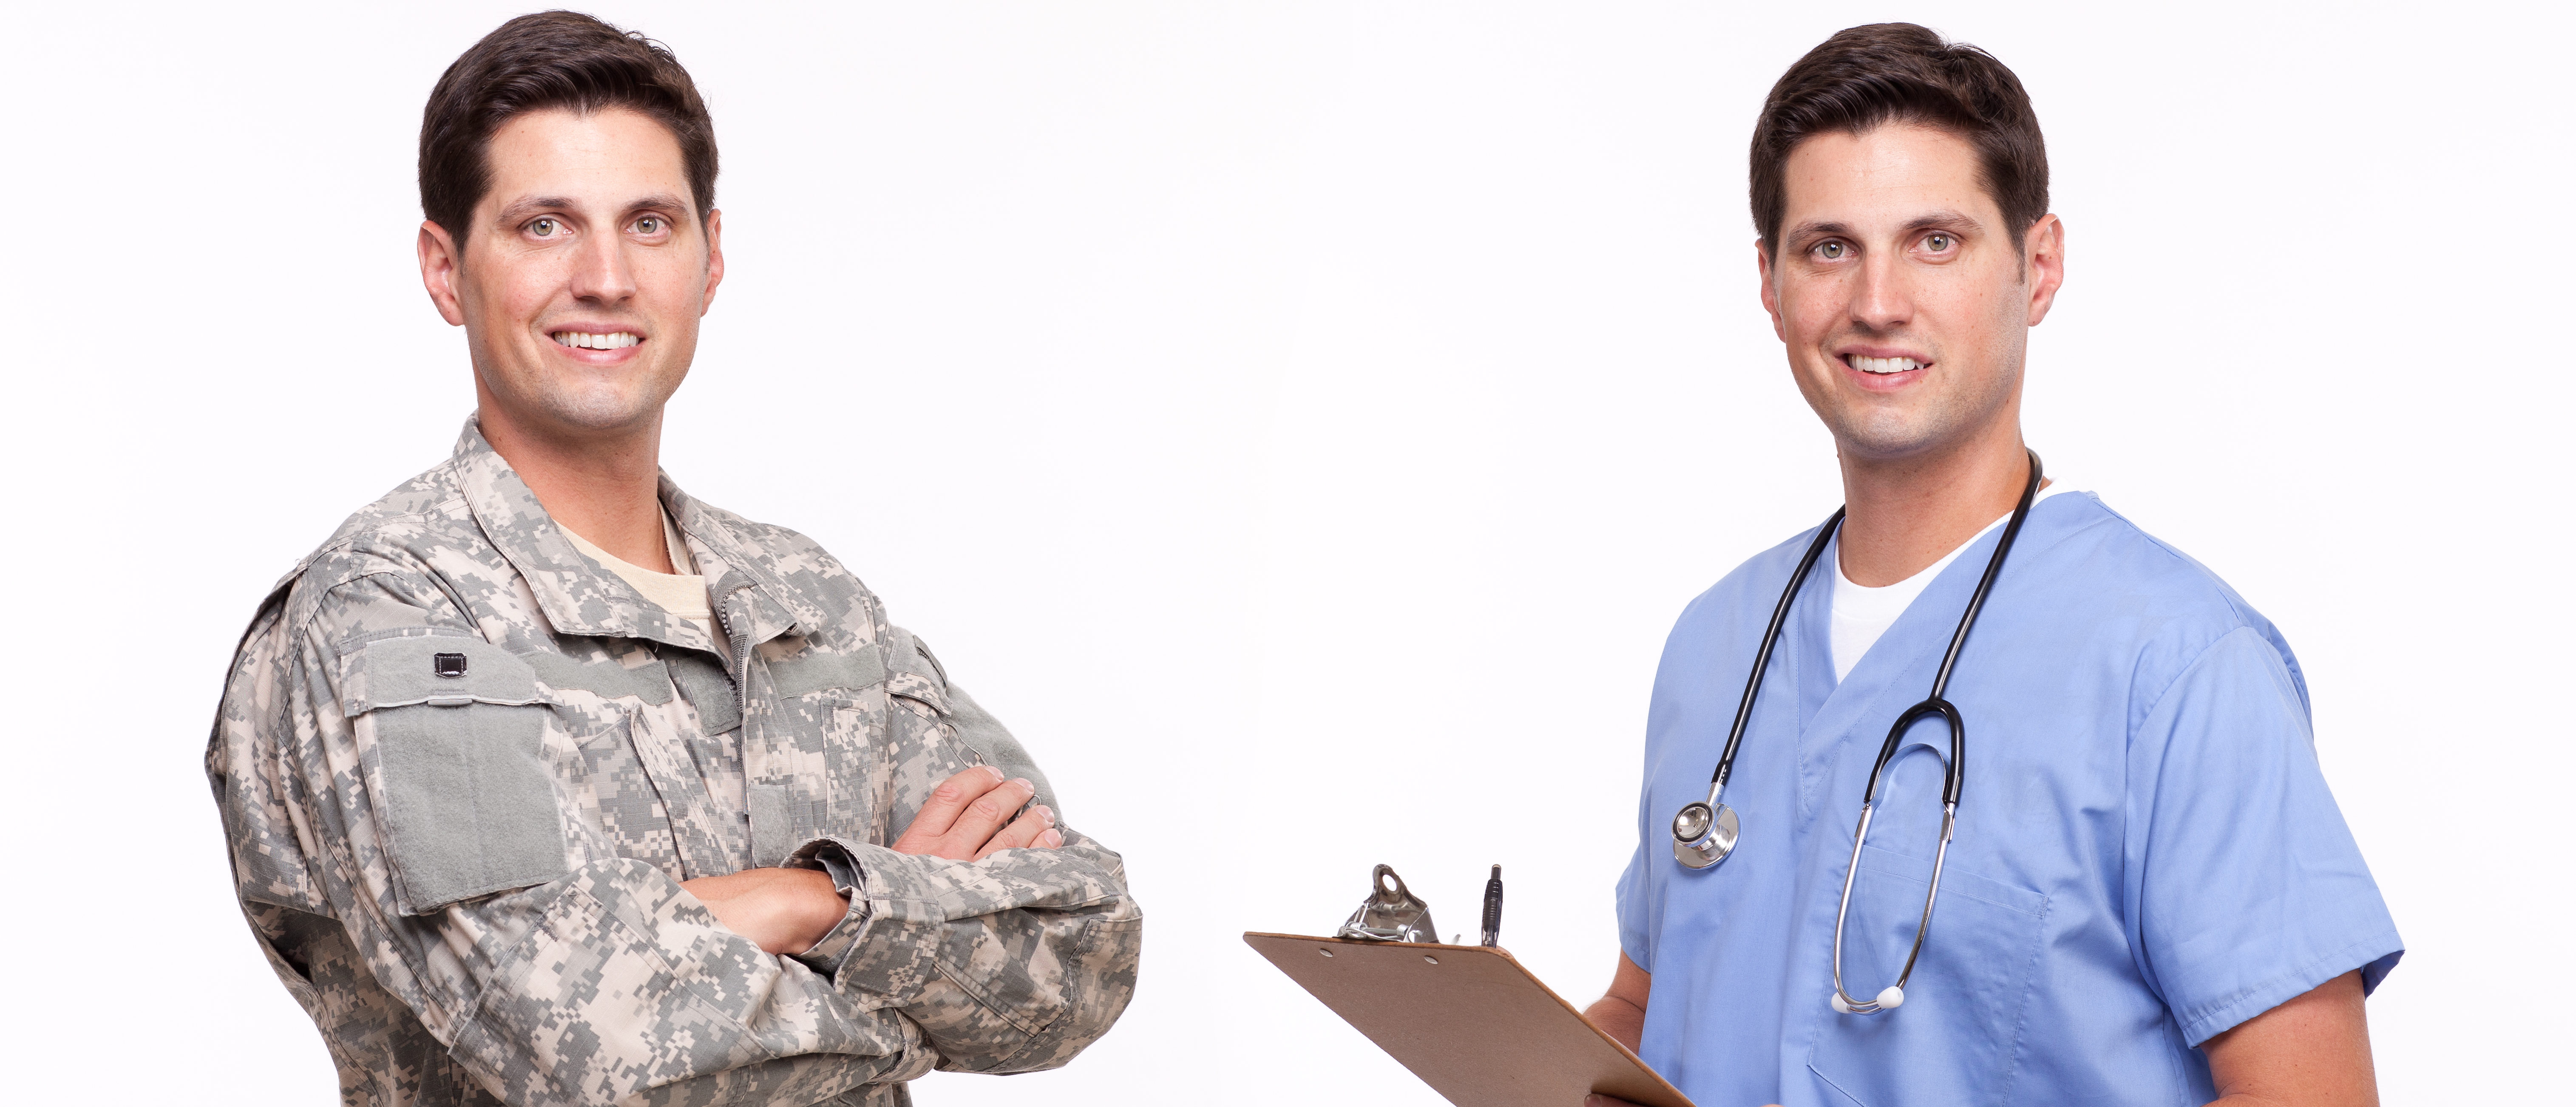 """Google announced onMonday multiple new tools to help service members transition into civilian jobs as part of Google's """"Grow with Google"""" American economic program. Image: Shutterstock.com"""